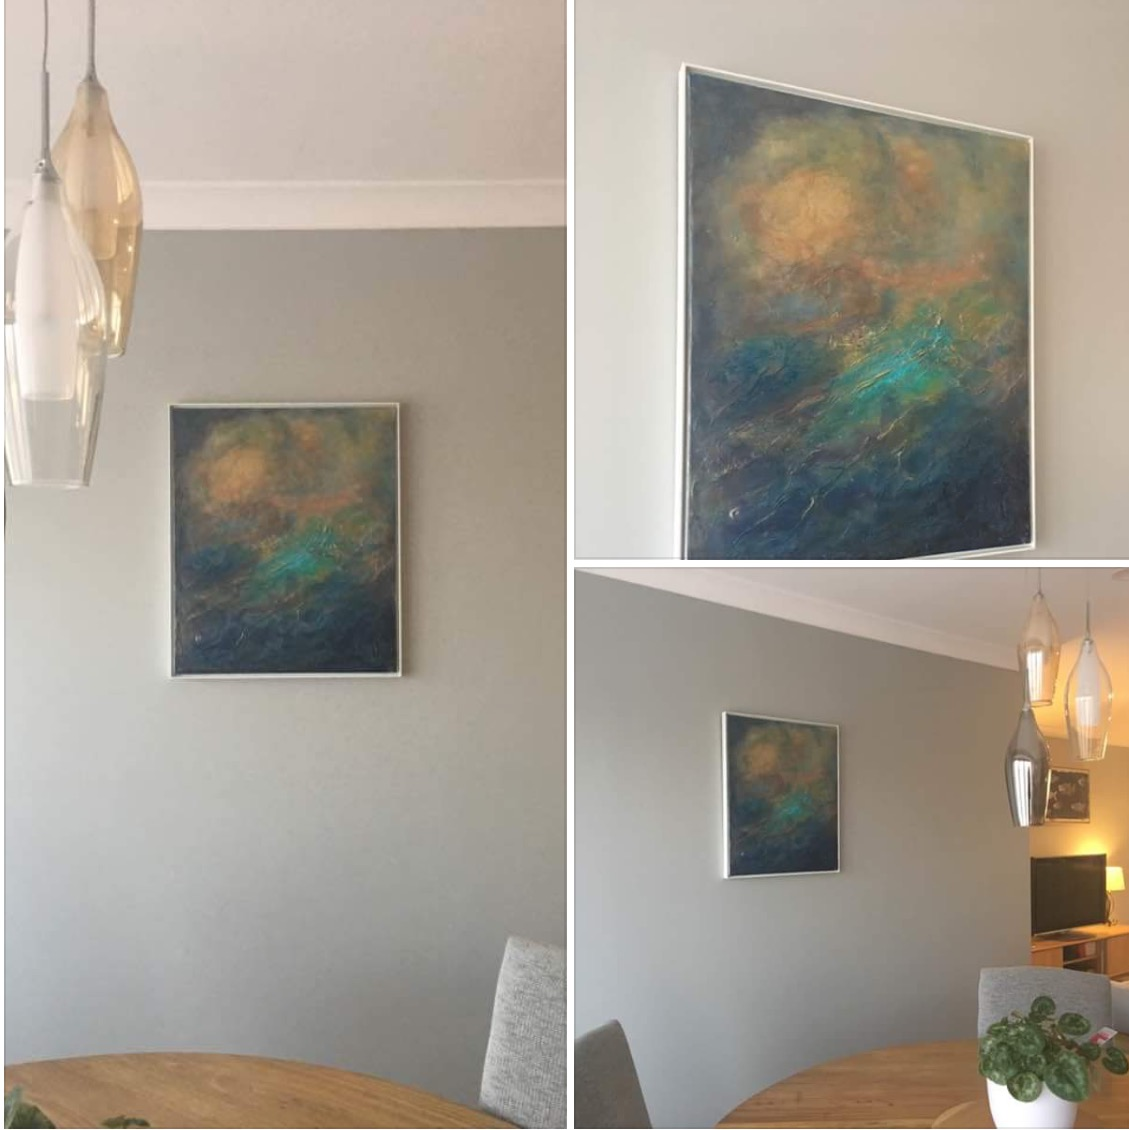 LUMINESCENCE 1 in its new home in Australia